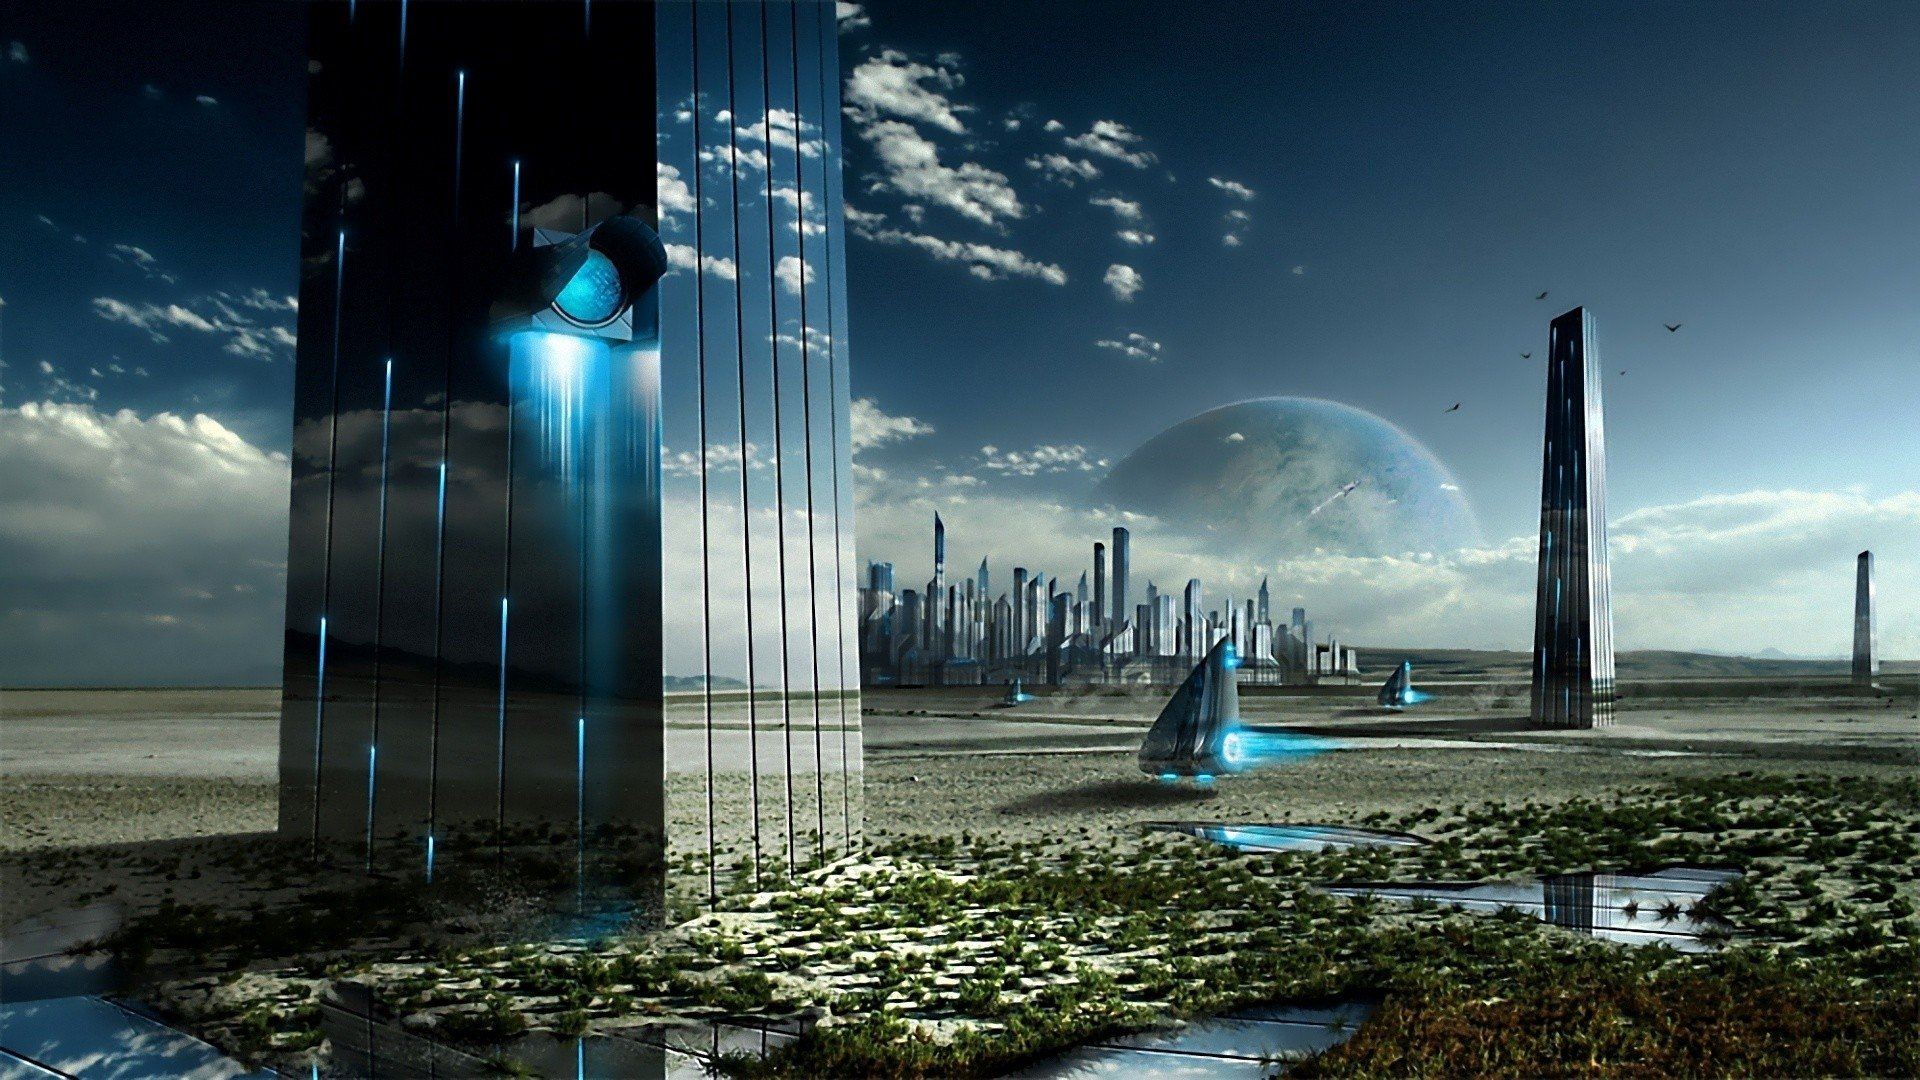 Sci Fi - City  Future Futuristic Wallpaper